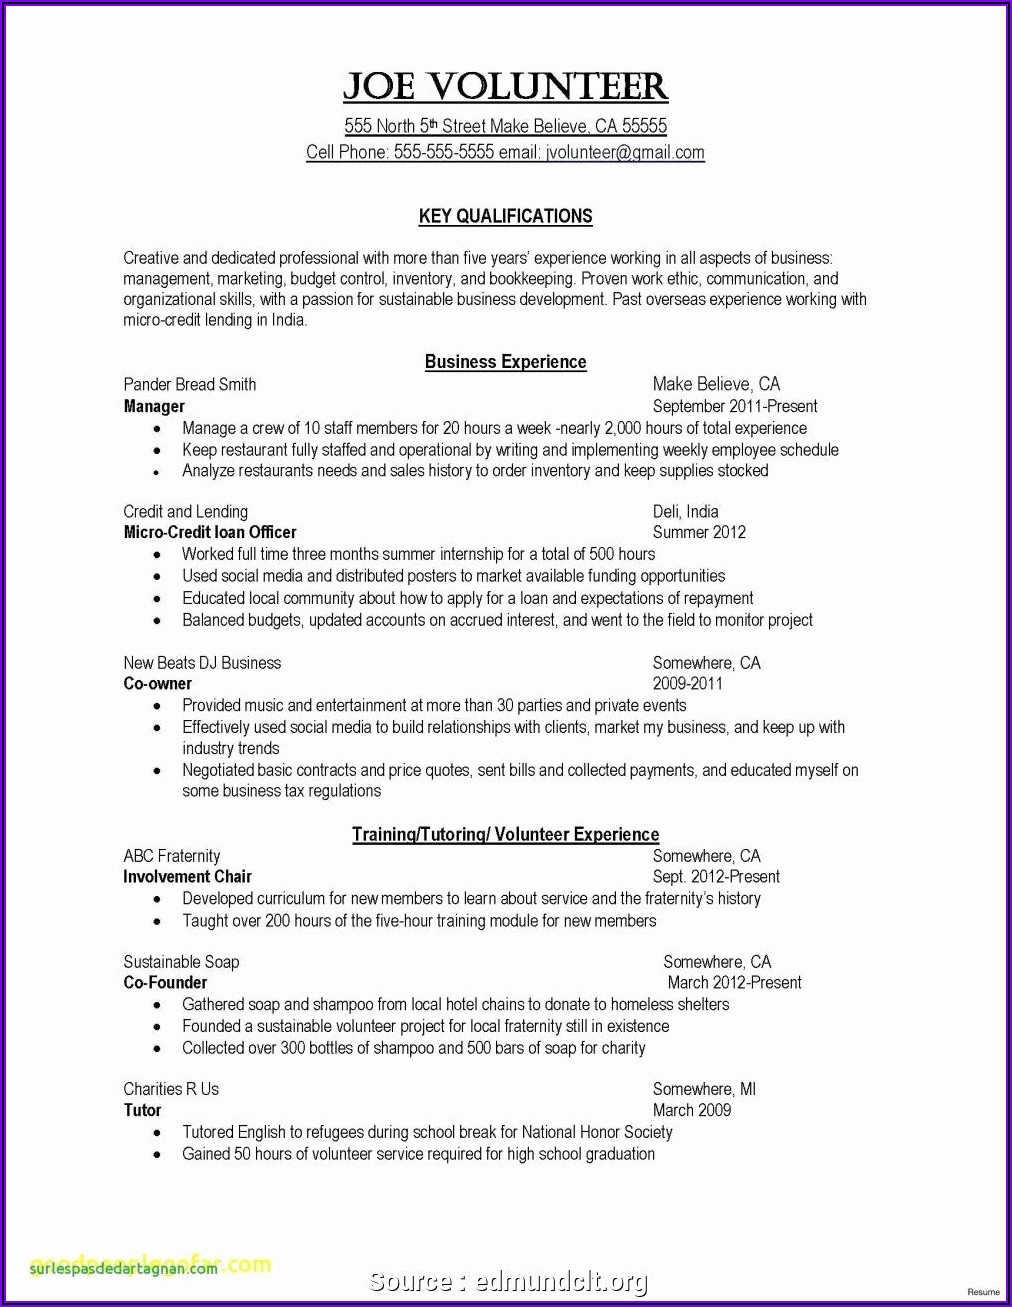 Proposal Staffing Plan Template